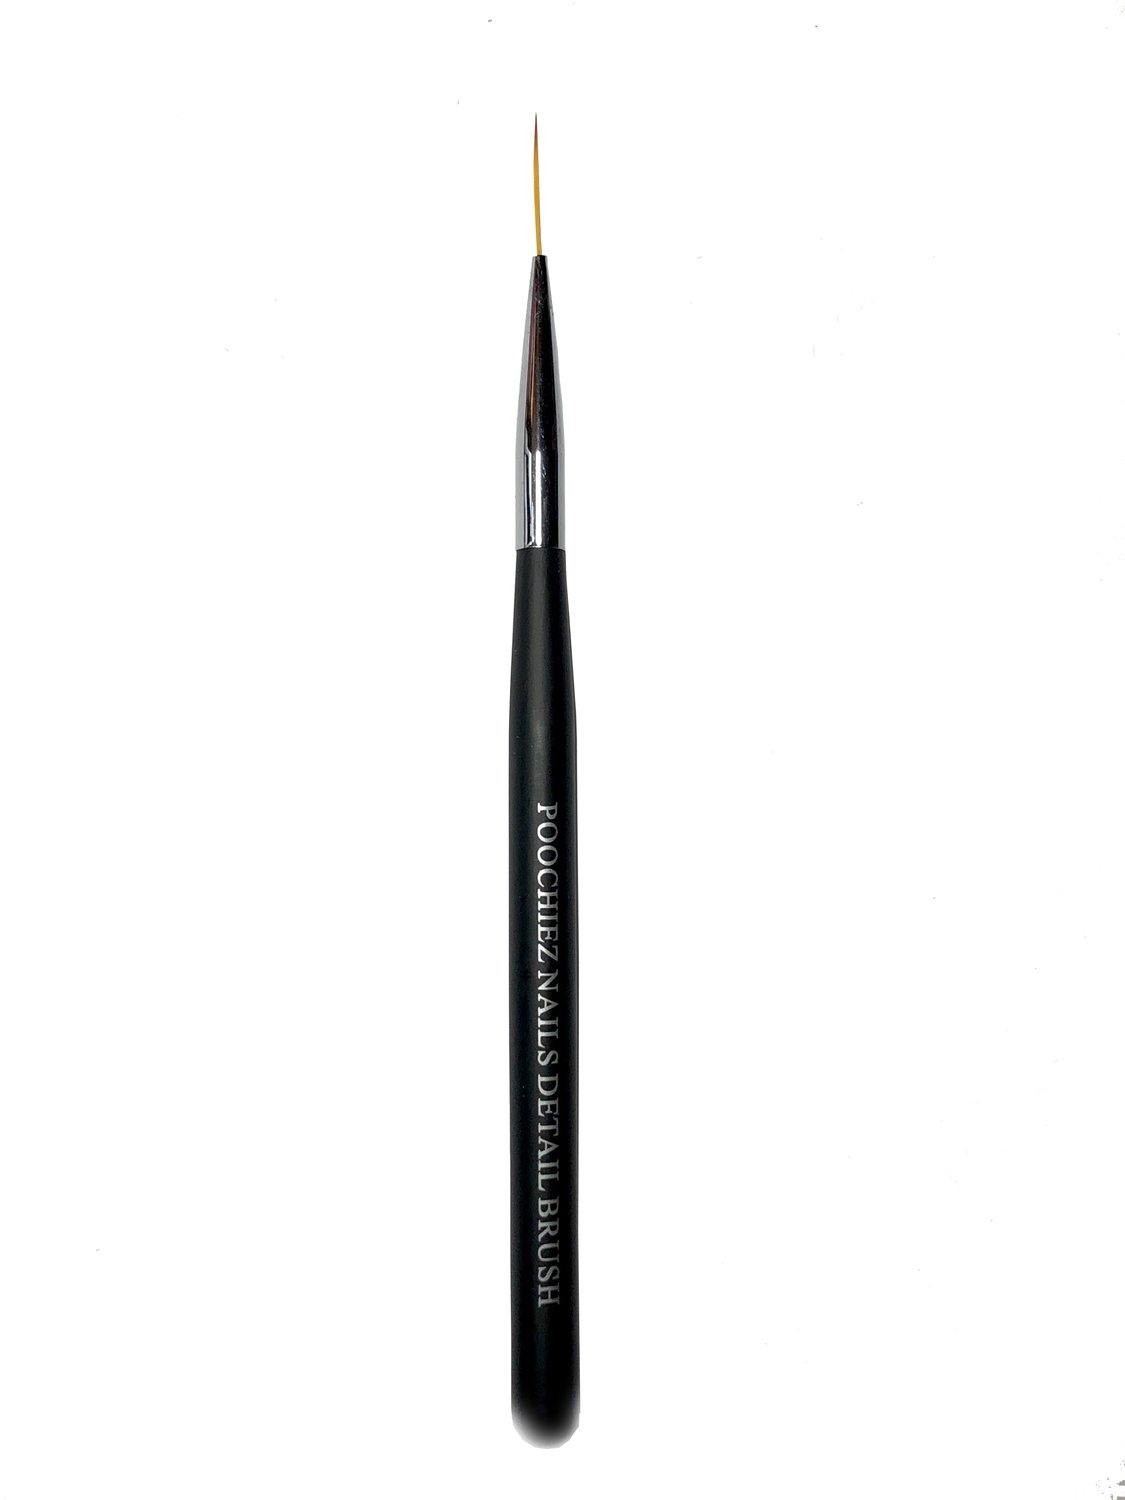 ITEM #4 POOCHIEZ NAILS THIN LINE DETAIL BRUSH